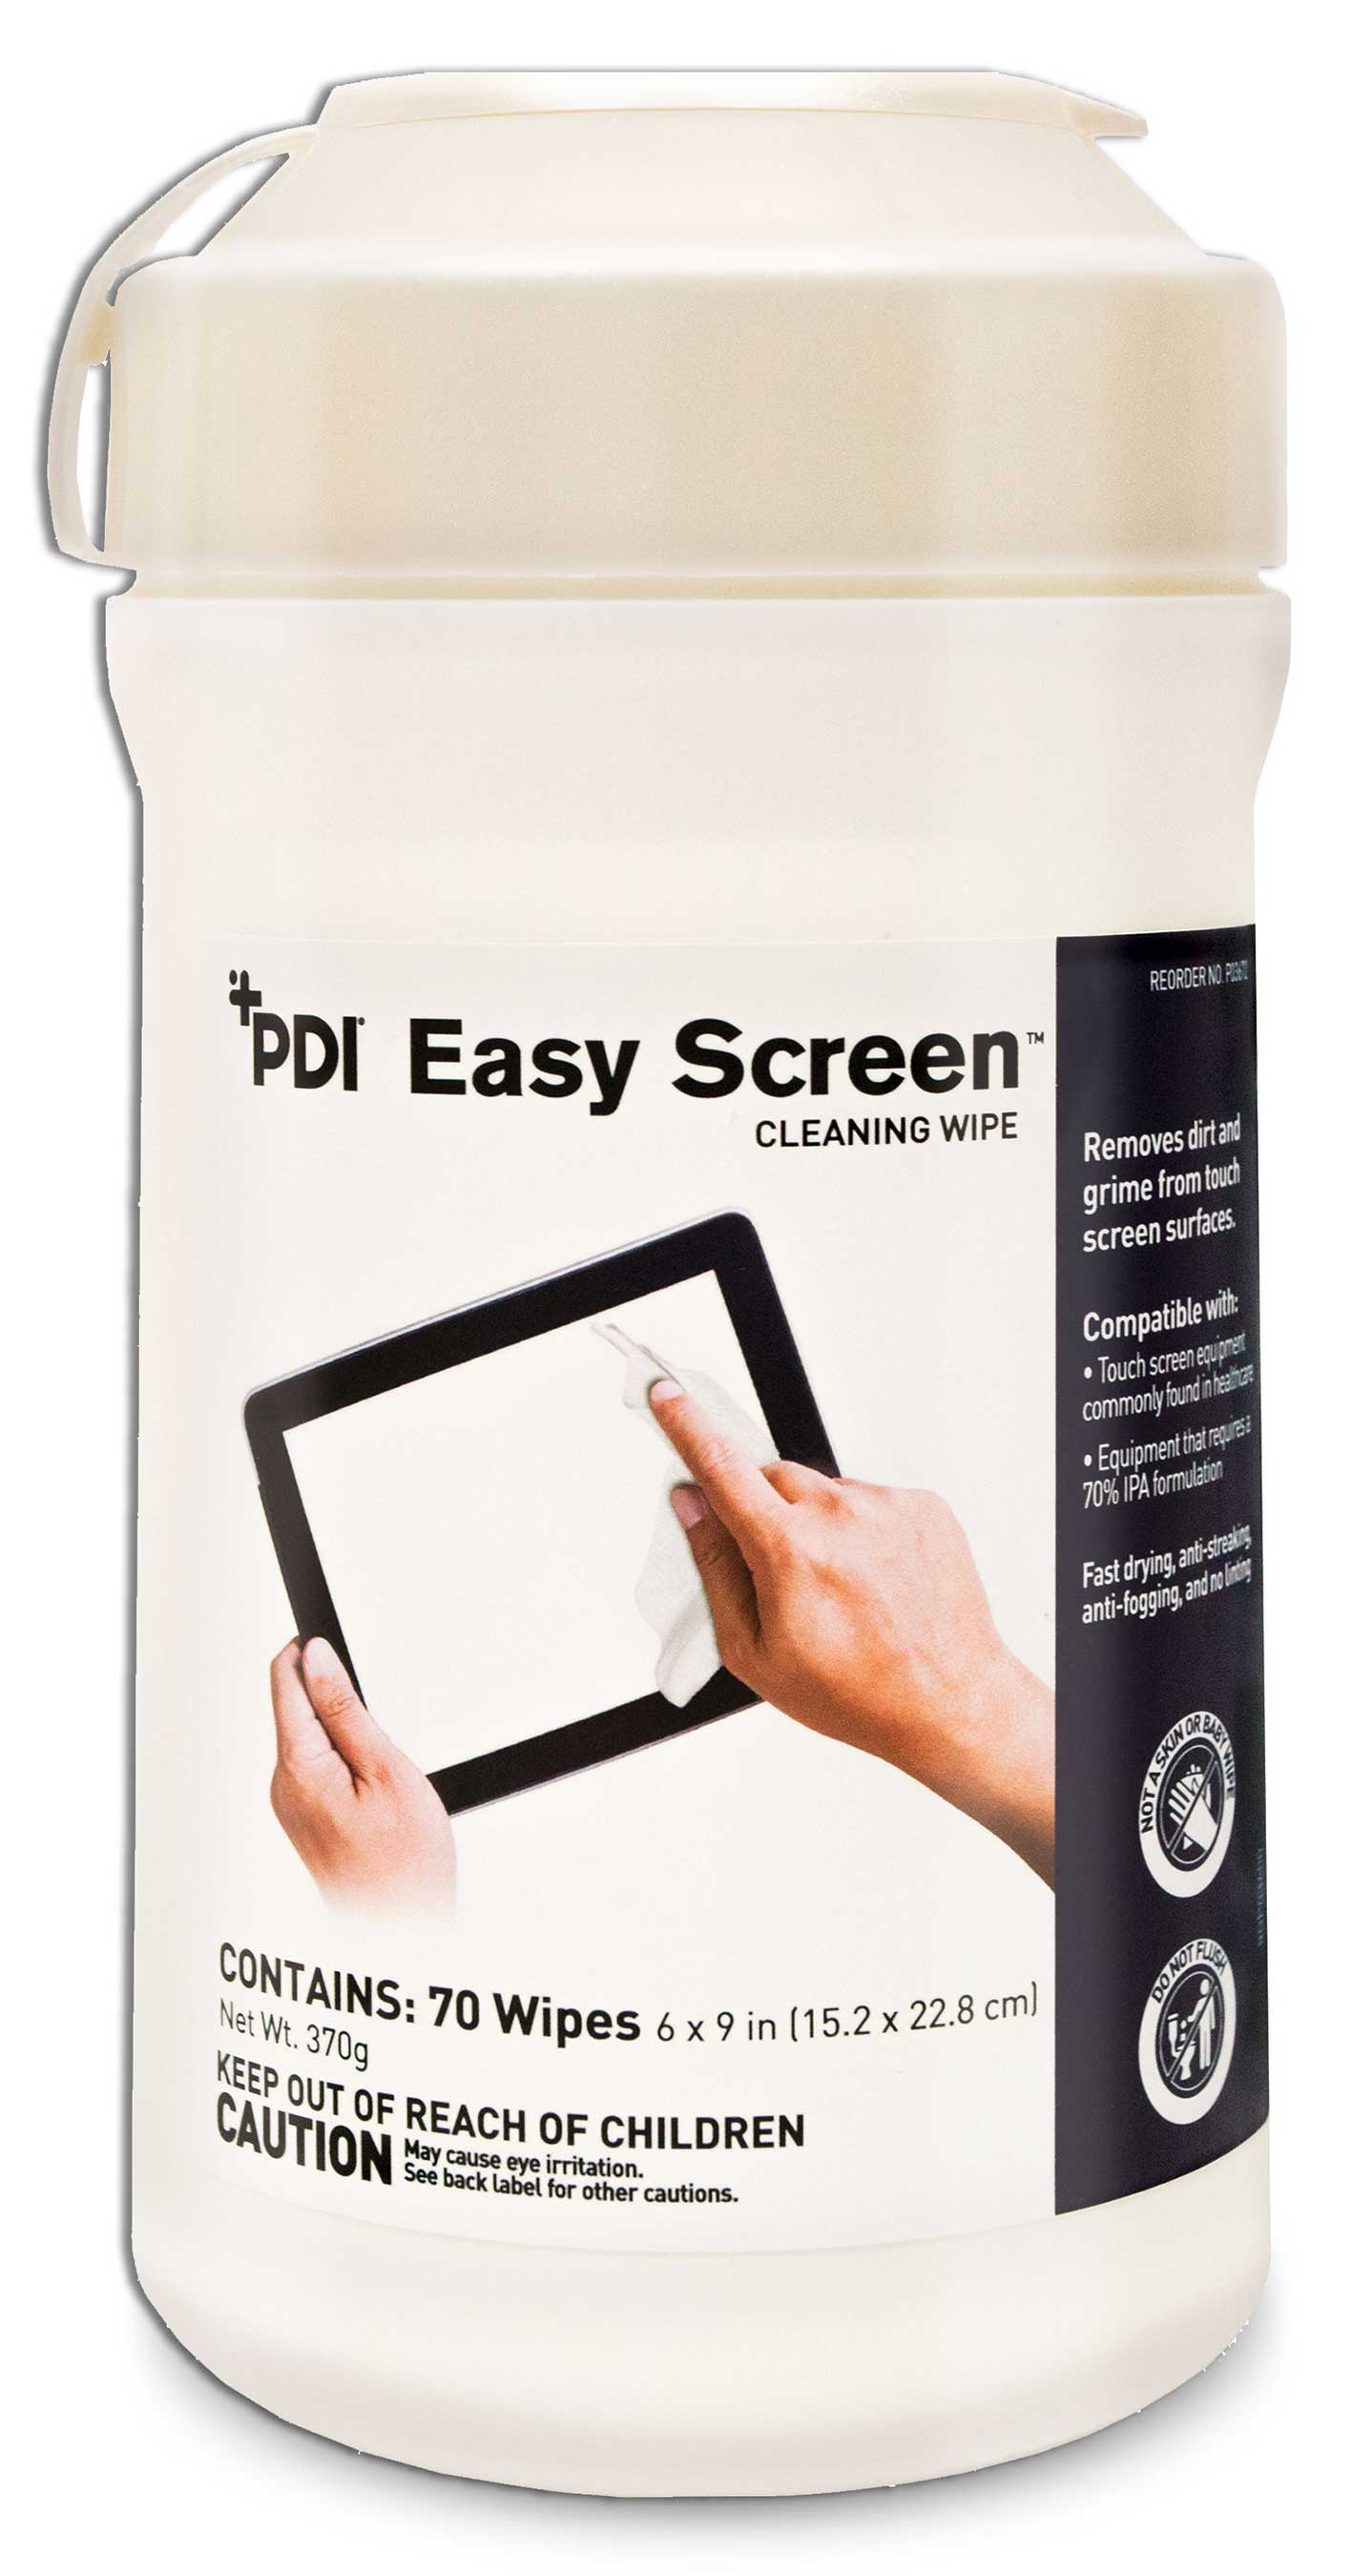 Pdi Healthcare Announcing Launch Of Easy Screen Cleaning Wipe